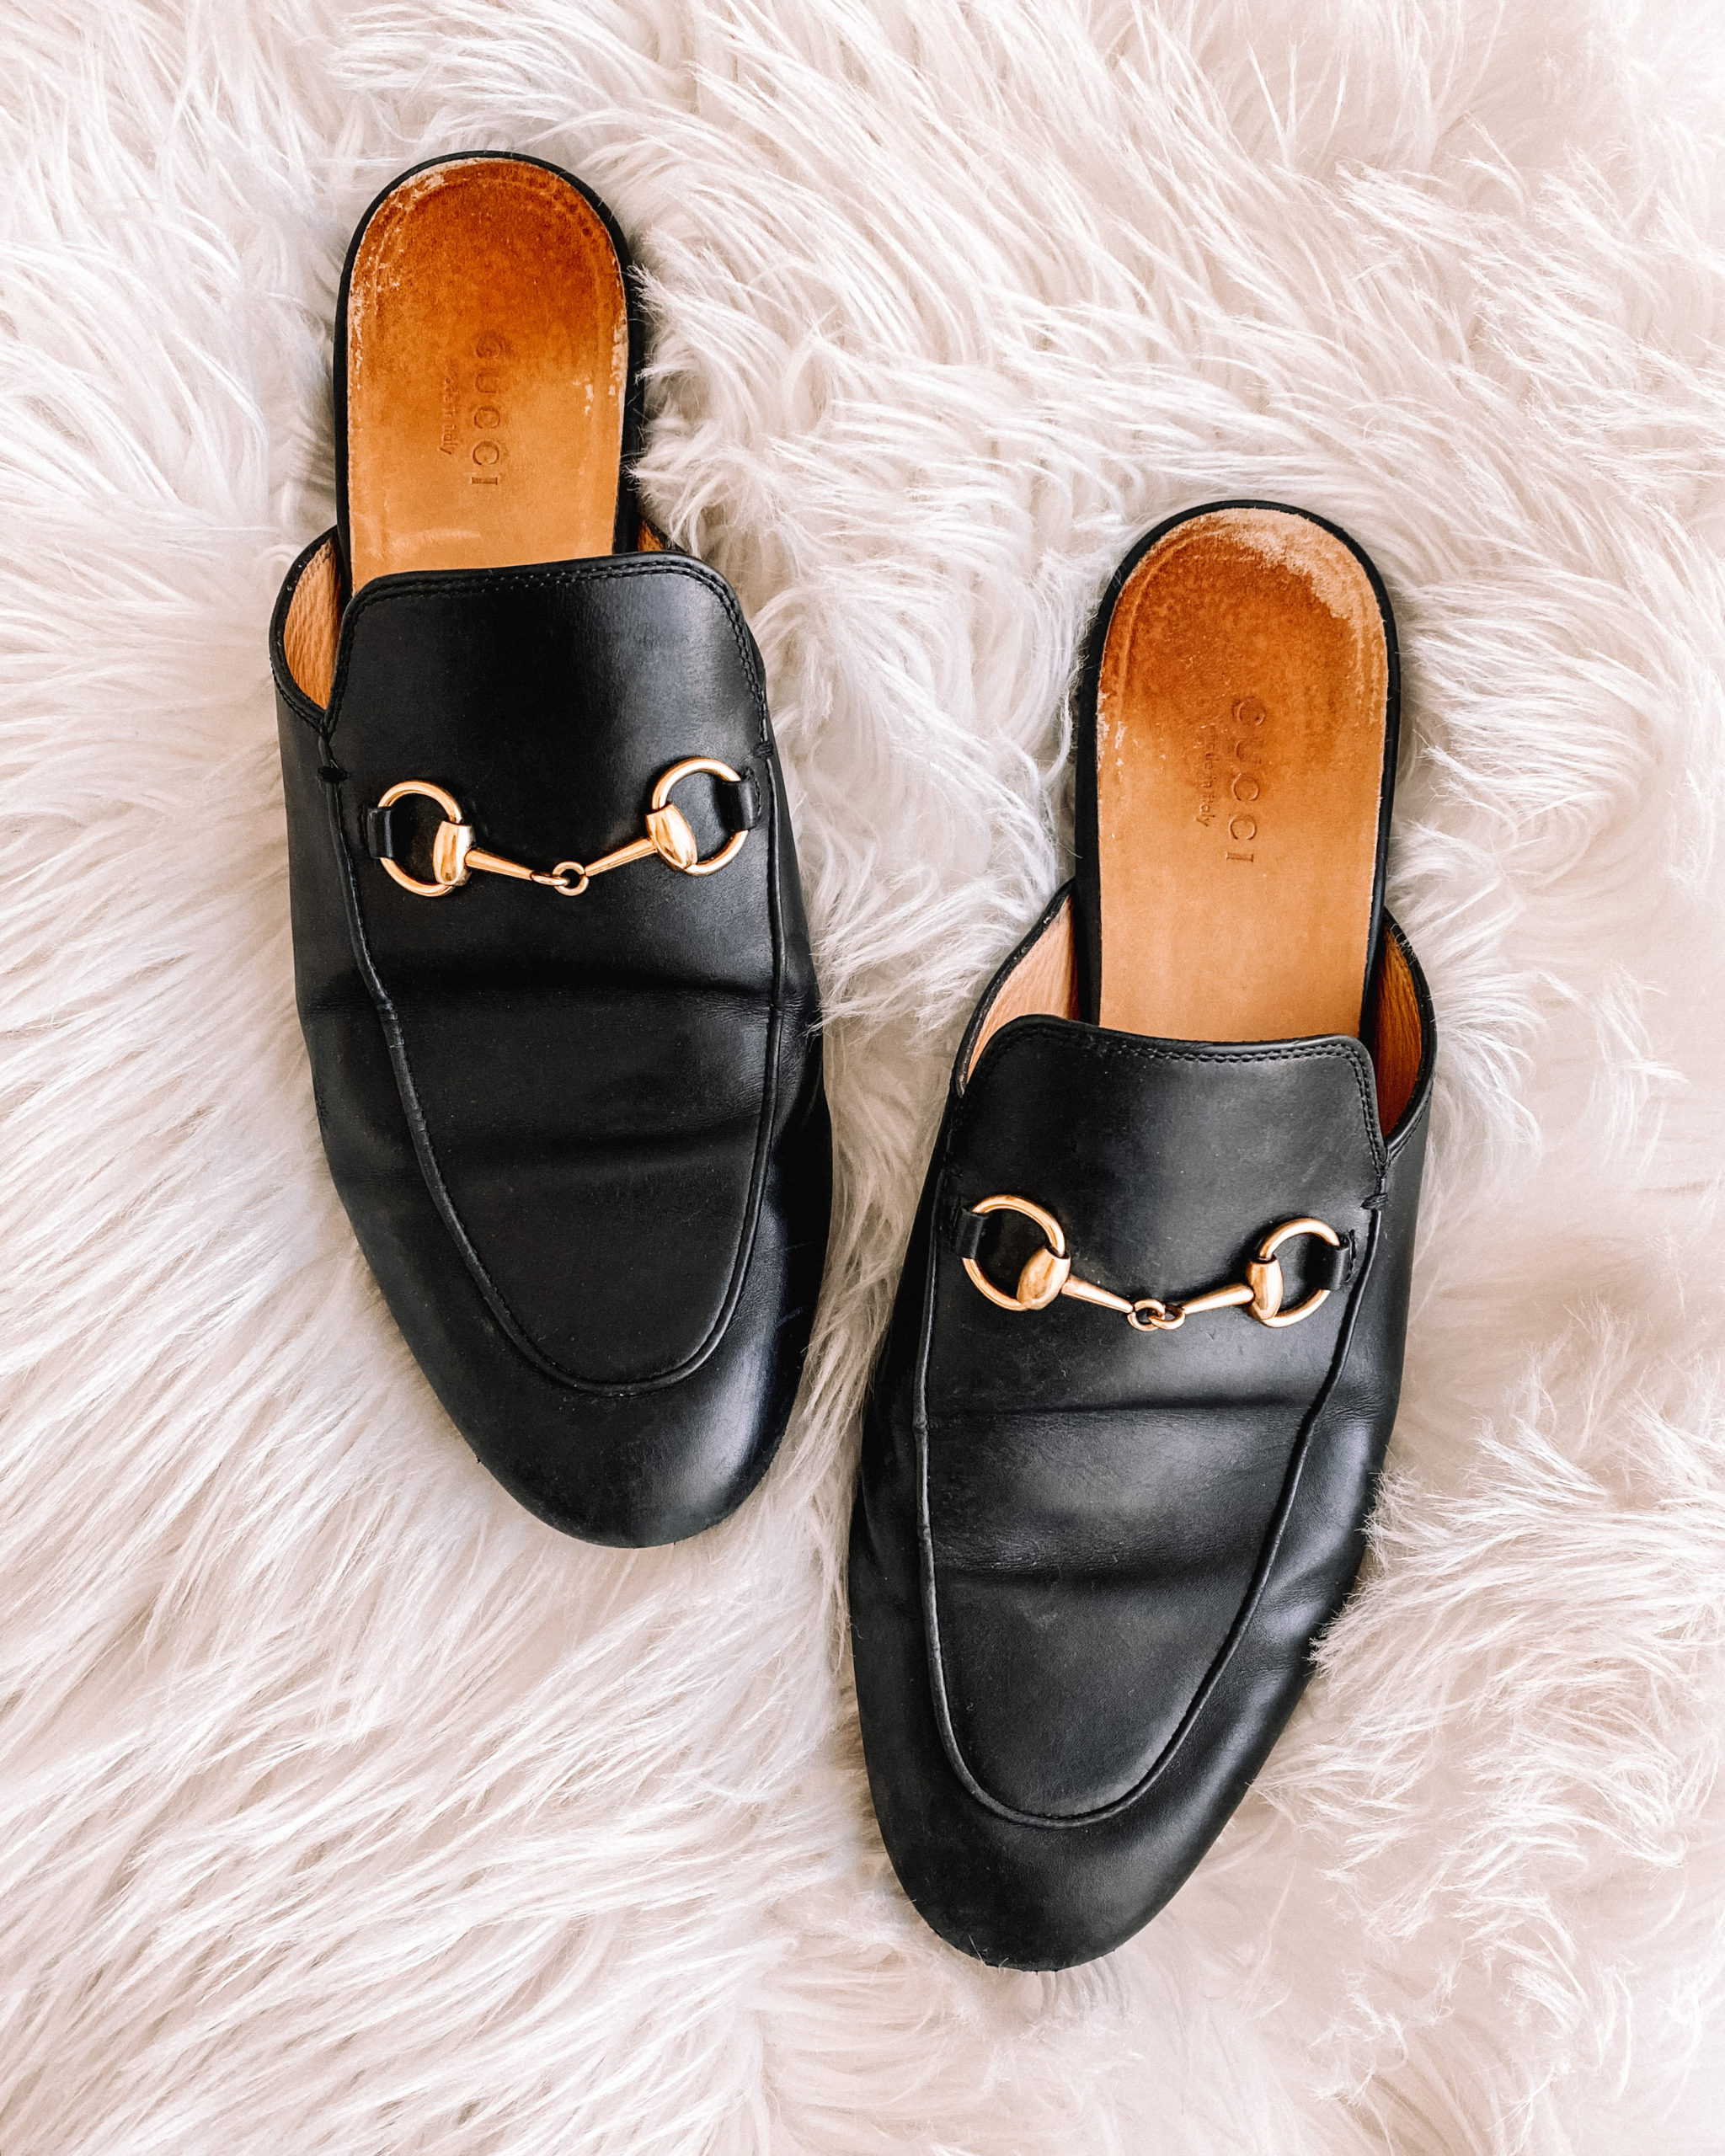 Fashion Jackson Gucci Princetown Mules Black